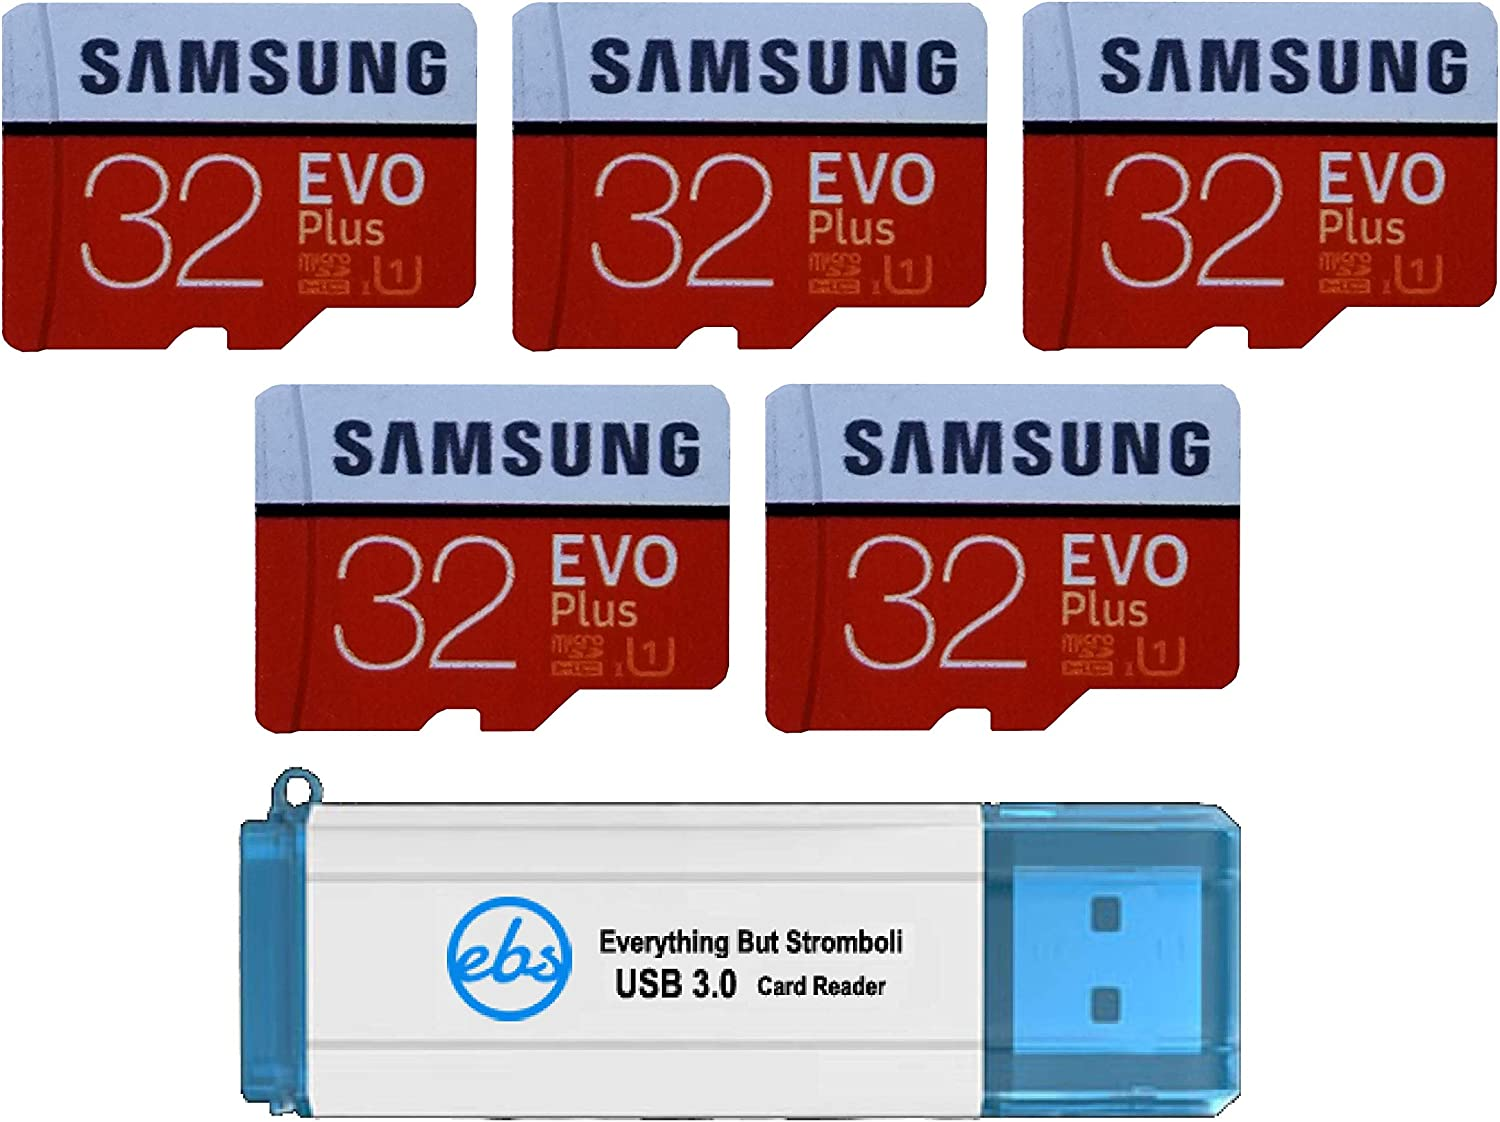 Samsung 32GB Evo Plus MicroSD Card (5 Pack) Class 10 SDHC Memory Card with Adapter (MB-MC32G) Bundle with (1) Everything But Stromboli 3.0 Reader with SD & Micro (TF) Slots